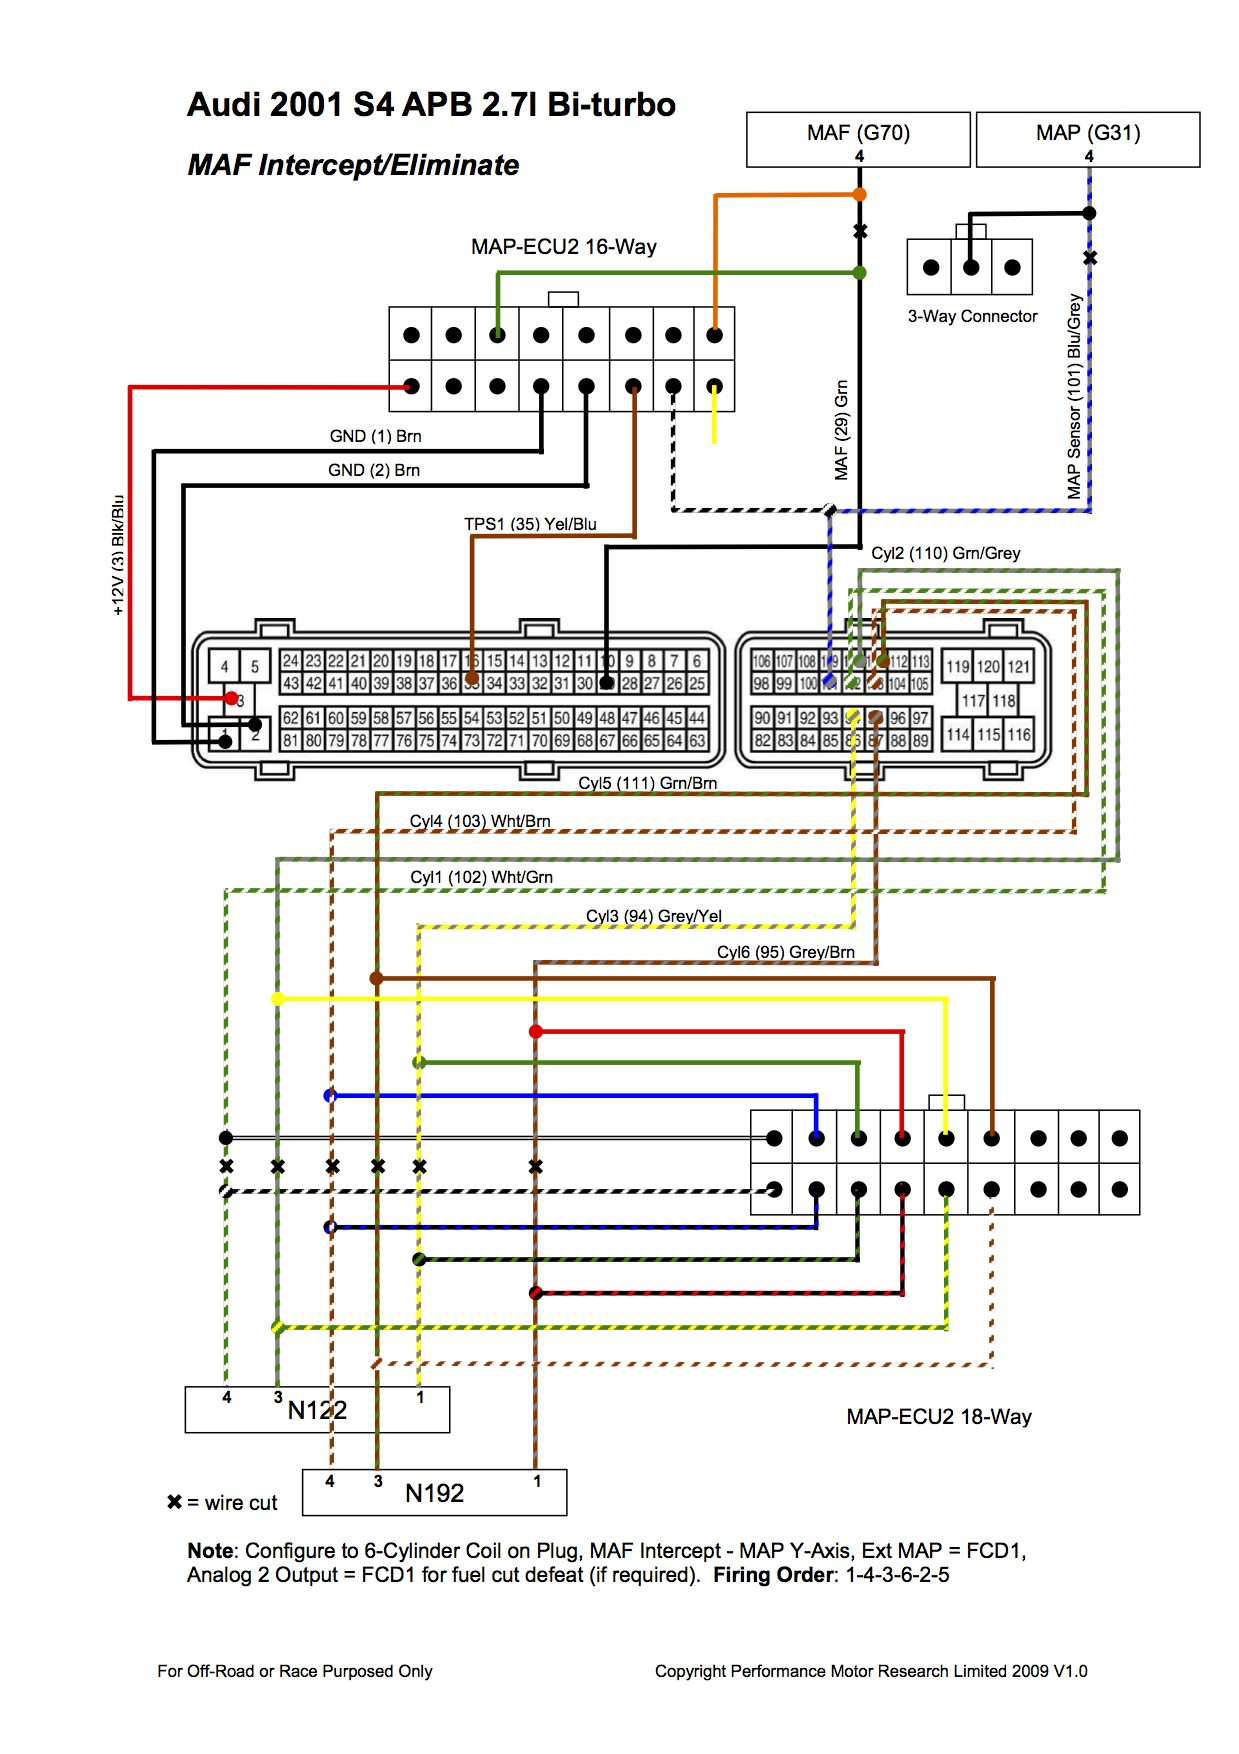 2004 dodge ram 1500 radio wiring diagram Collection-1995 Dodge Ram 1500 Transmission Wiring Diagram Best 2002 Dodge Ram 2500 Radio Wiring Diagram Wiring Solutions 2-m